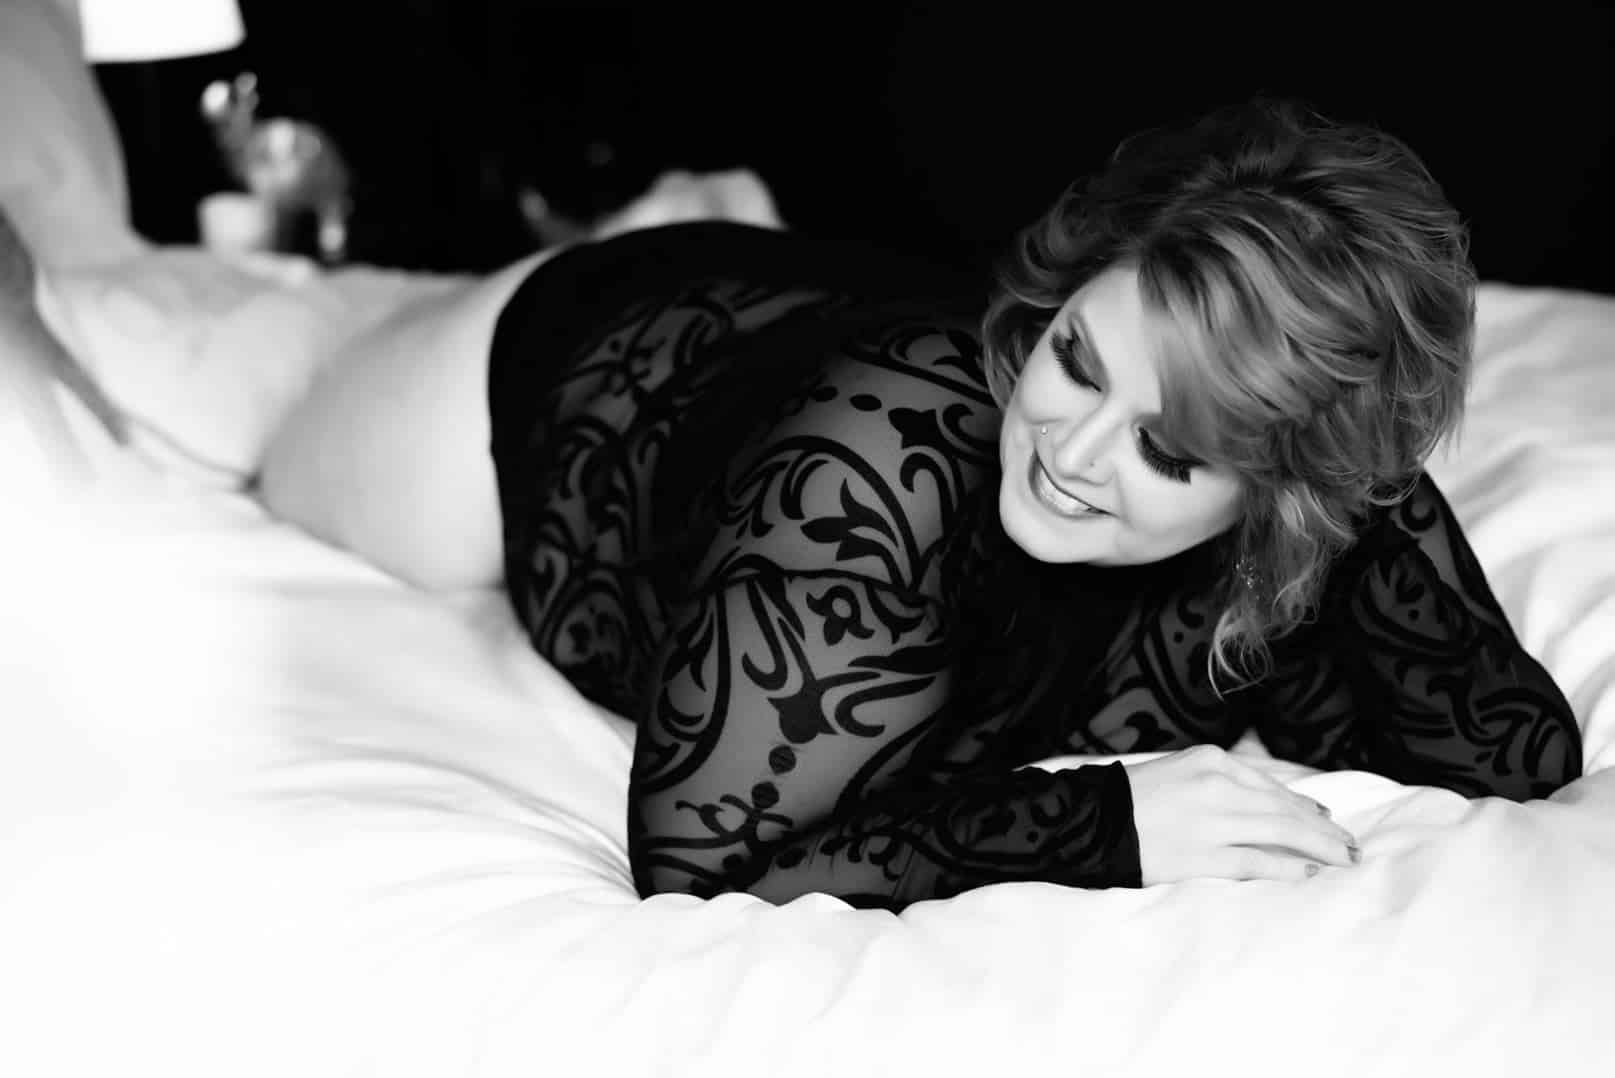 Woman posing in black long sleeved lingerie on a bed